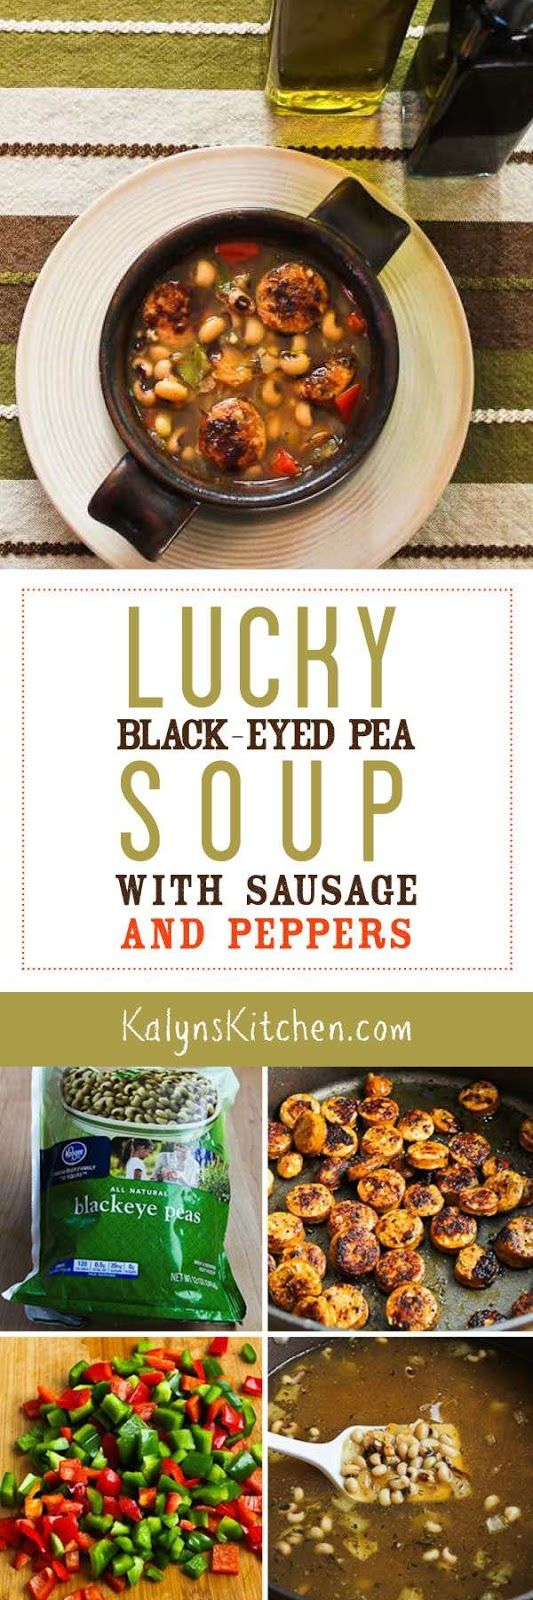 Lucky Black-Eyed Pea Soup Recipe with Chicken-Garlic Sausage and Bell ...